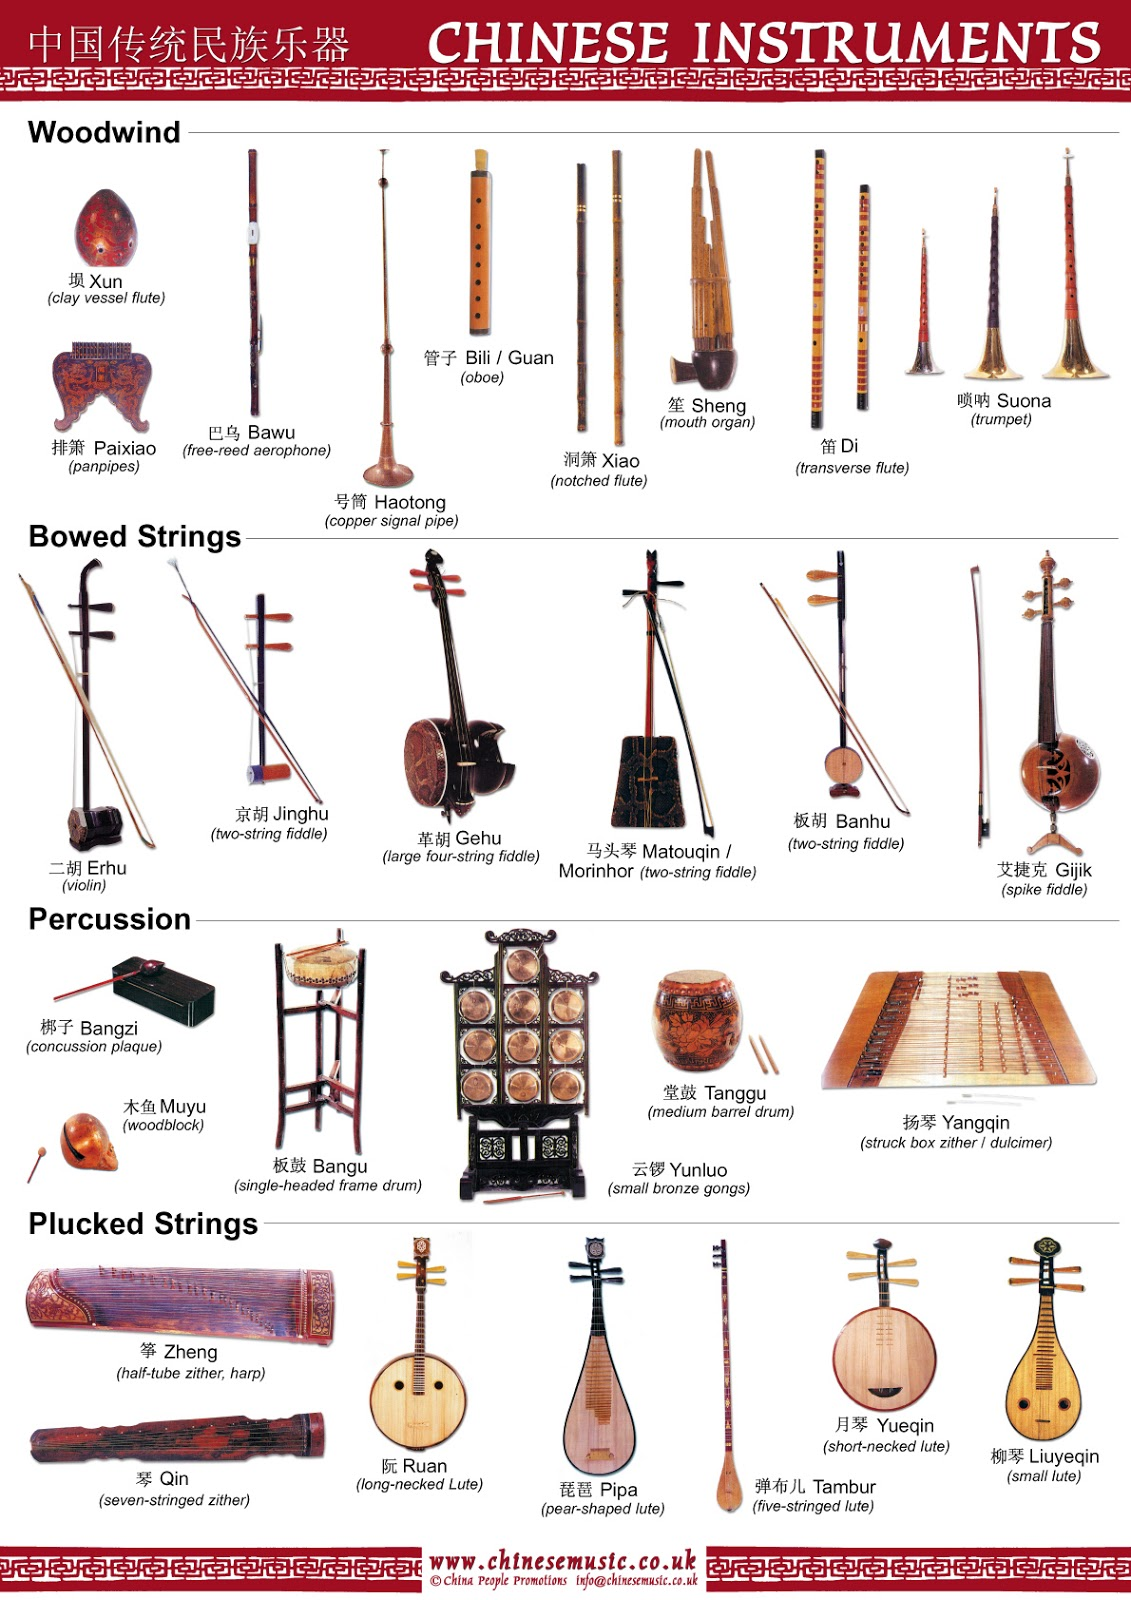 Musical Instruments Images And Their Names